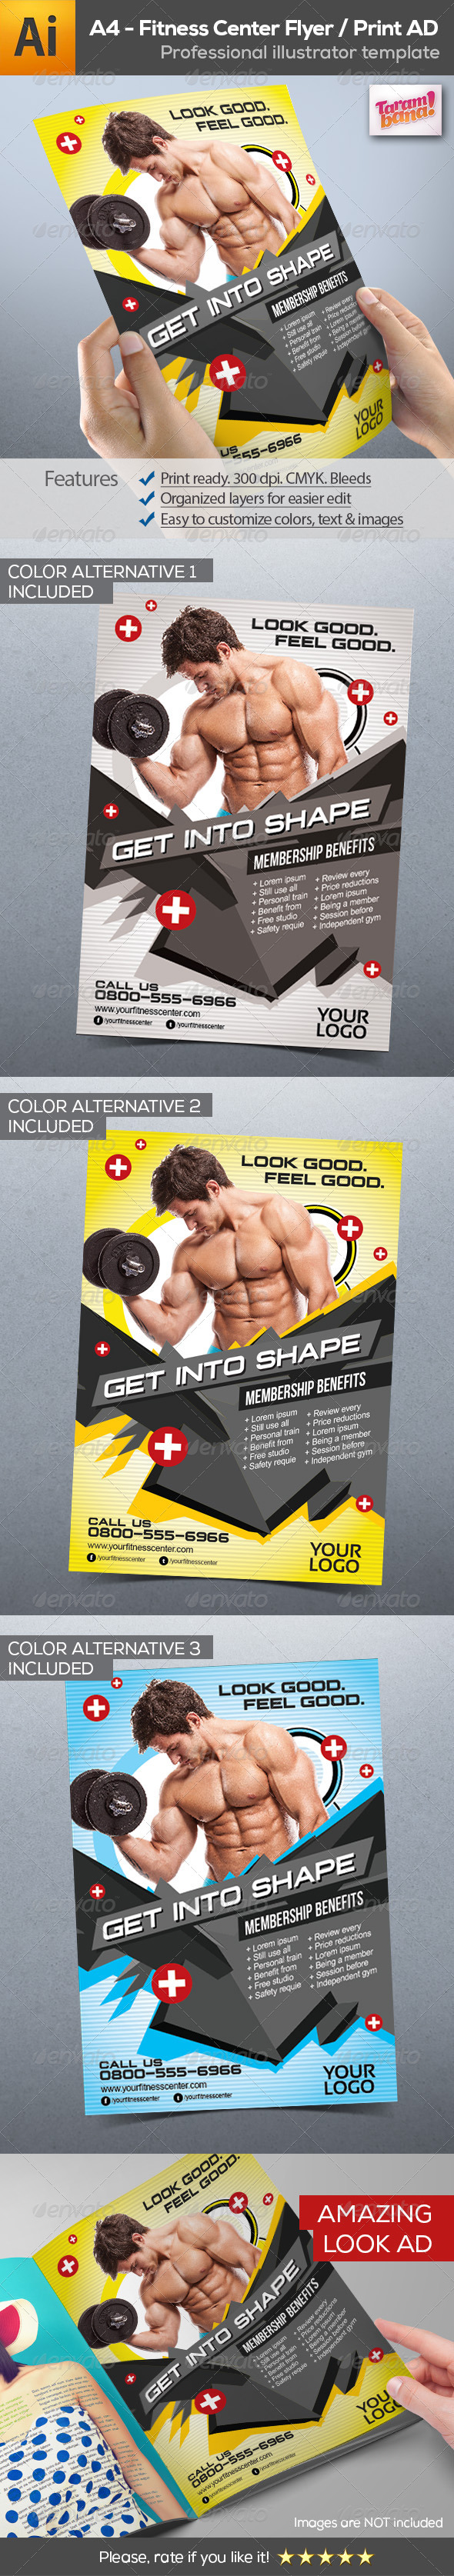 GraphicRiver Fitness Center Flyer Print AD 8716116